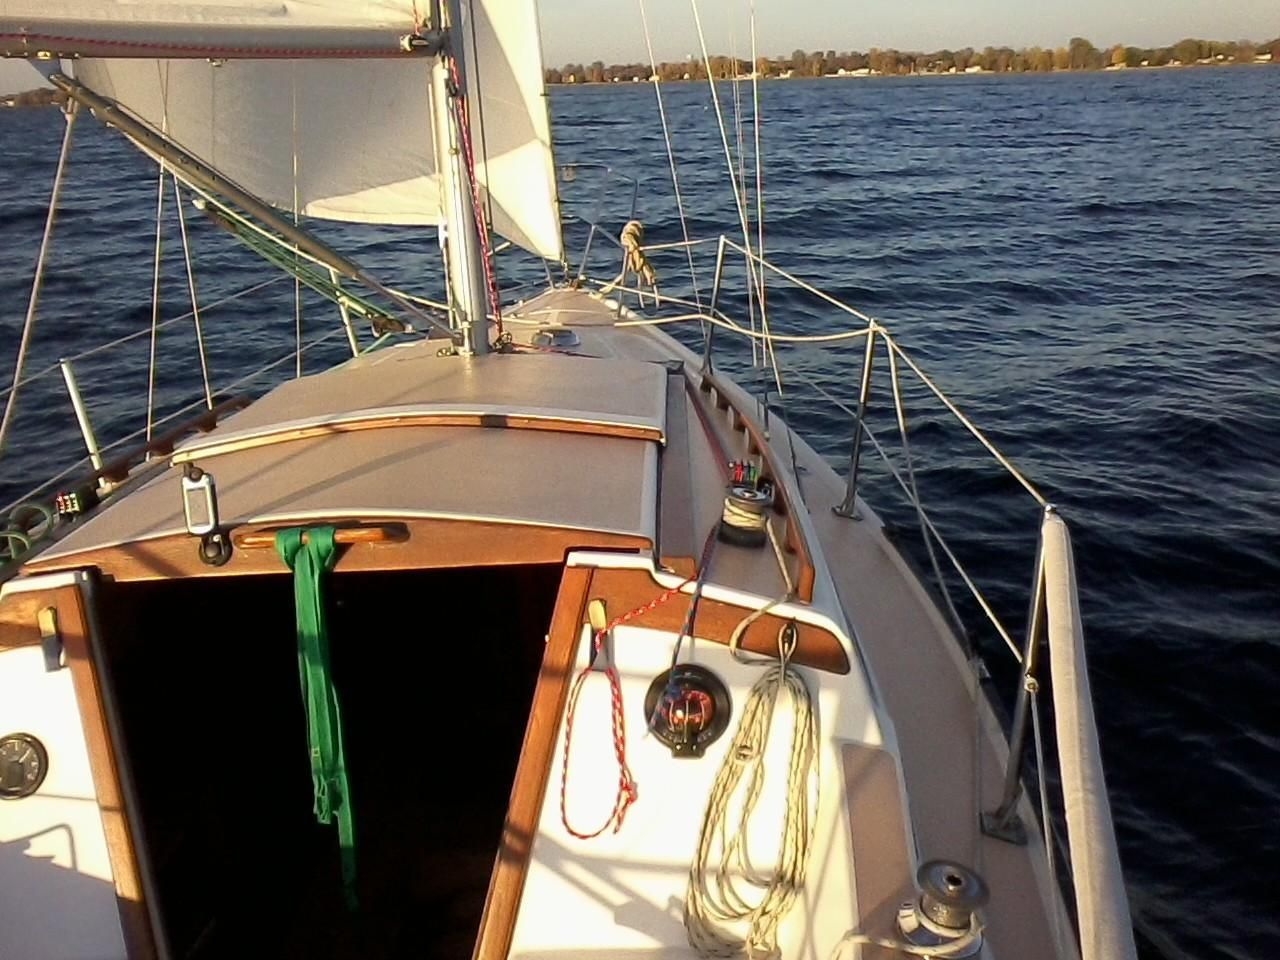 1982 Used Catalina 27 Cruiser Sailboat For Sale - $9,500